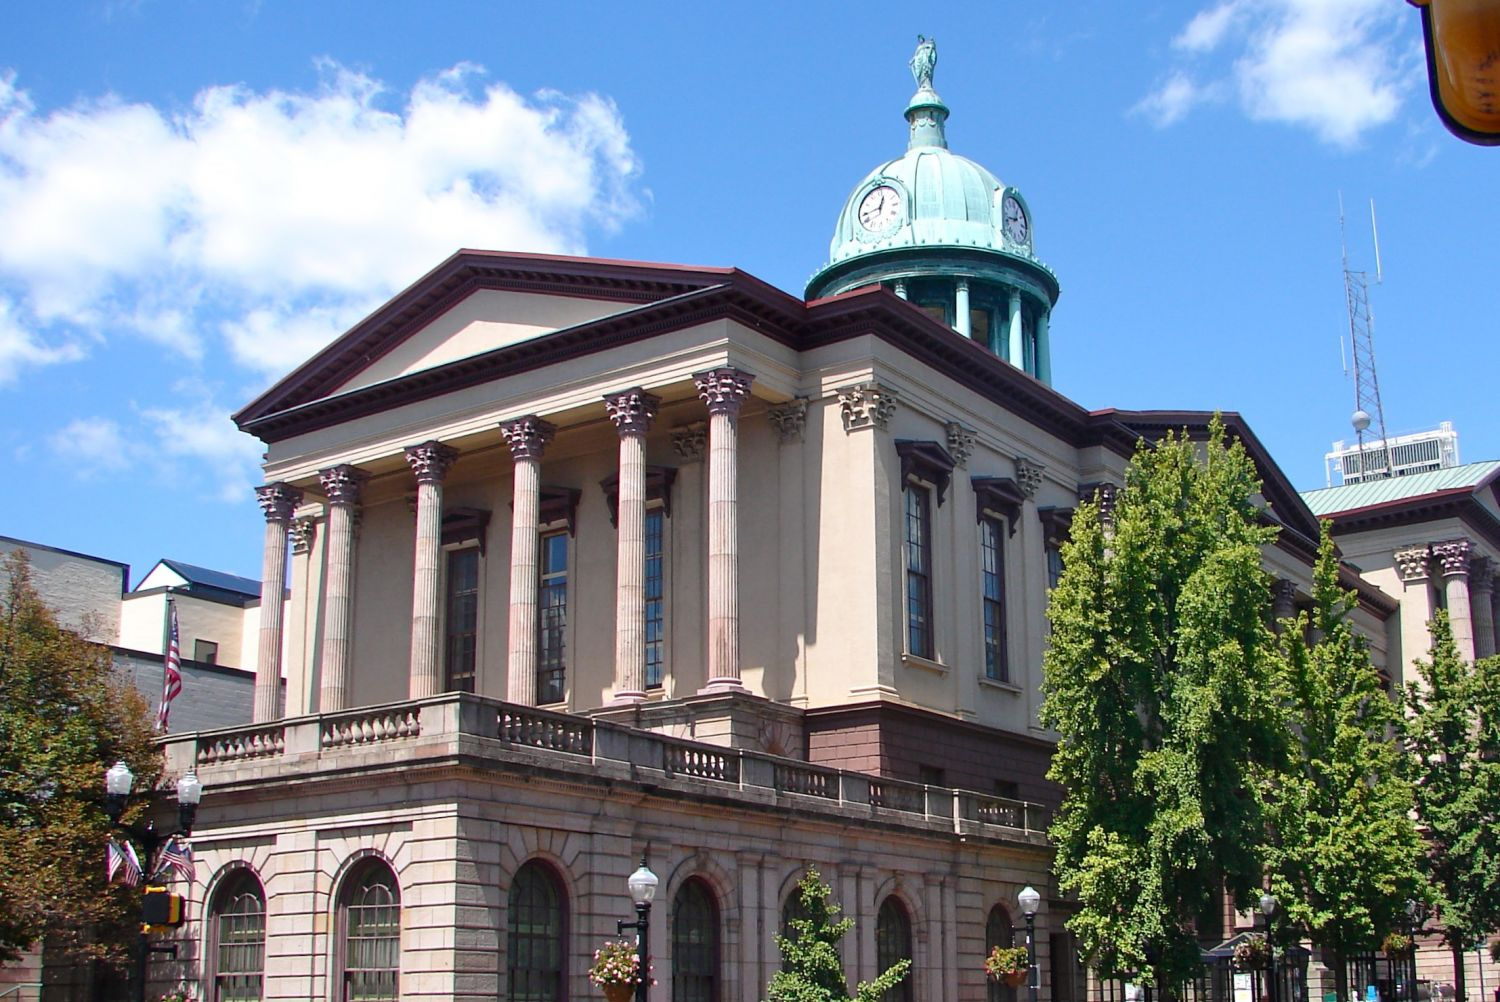 Lancaster County Courthouse - Photo Credit: Smallbones [CC0], from Wikimedia Commons